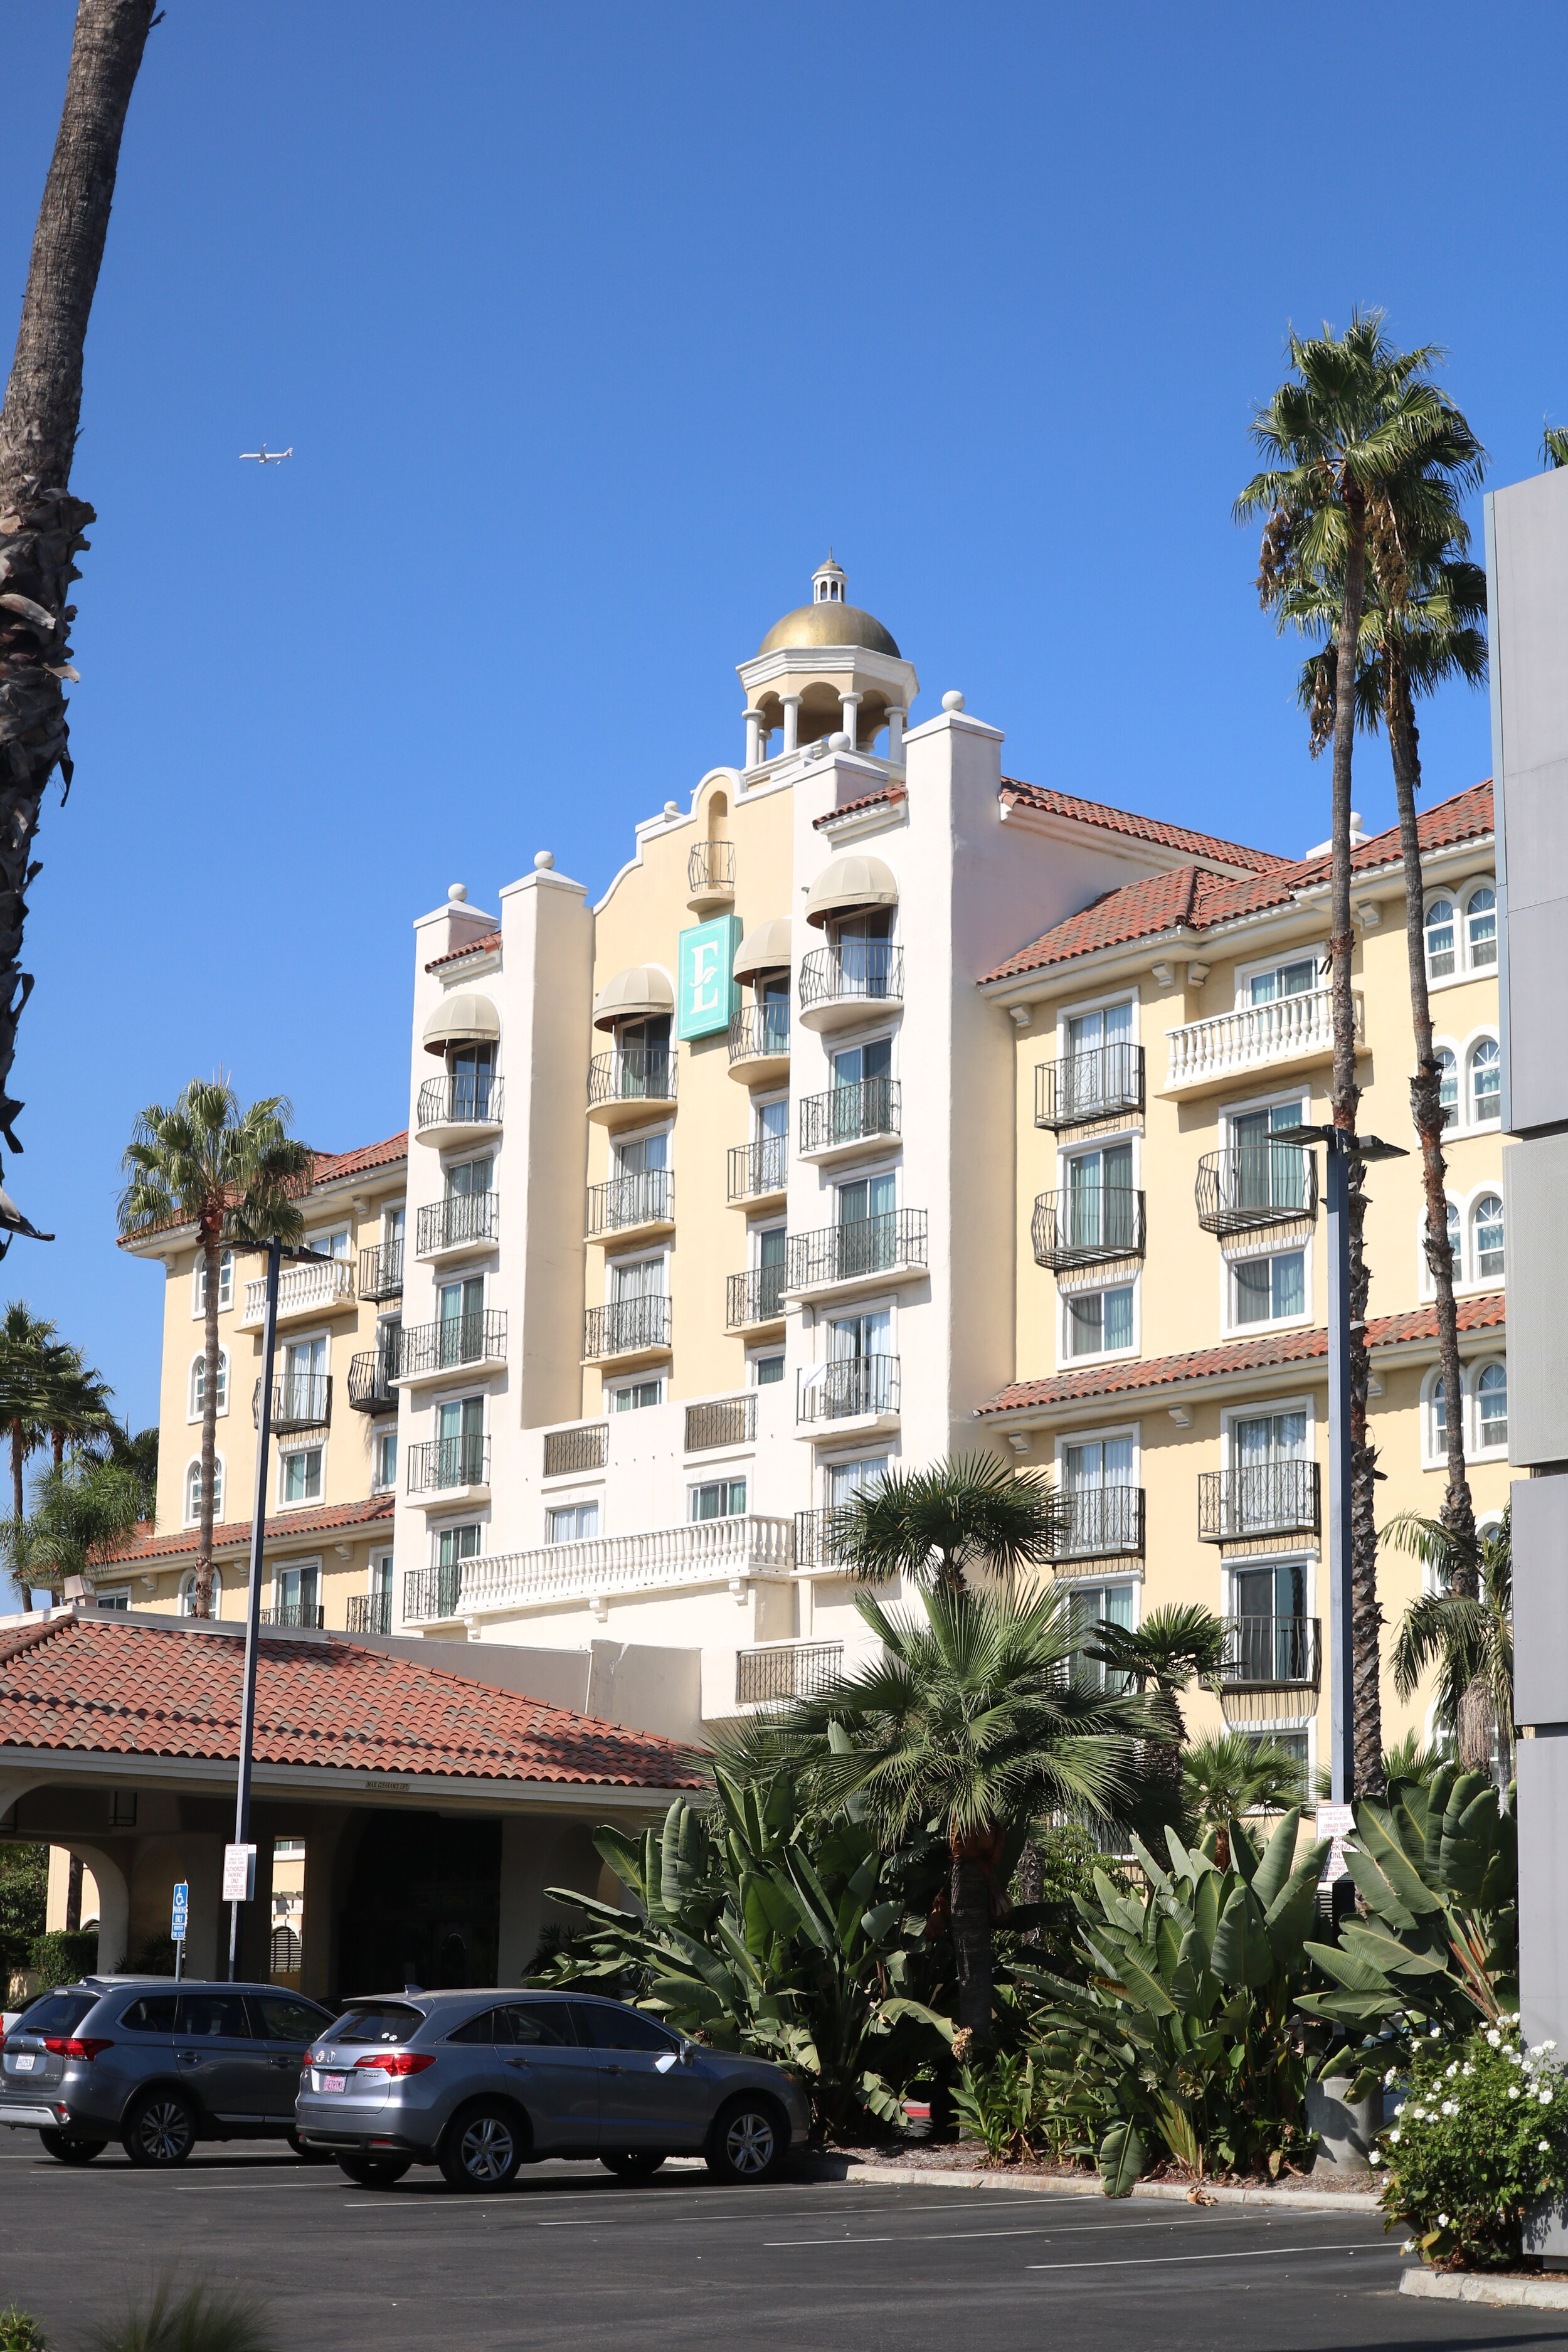 The Embassy Suites is currently Downey's only major hotel. Photo by Alex Dominguez